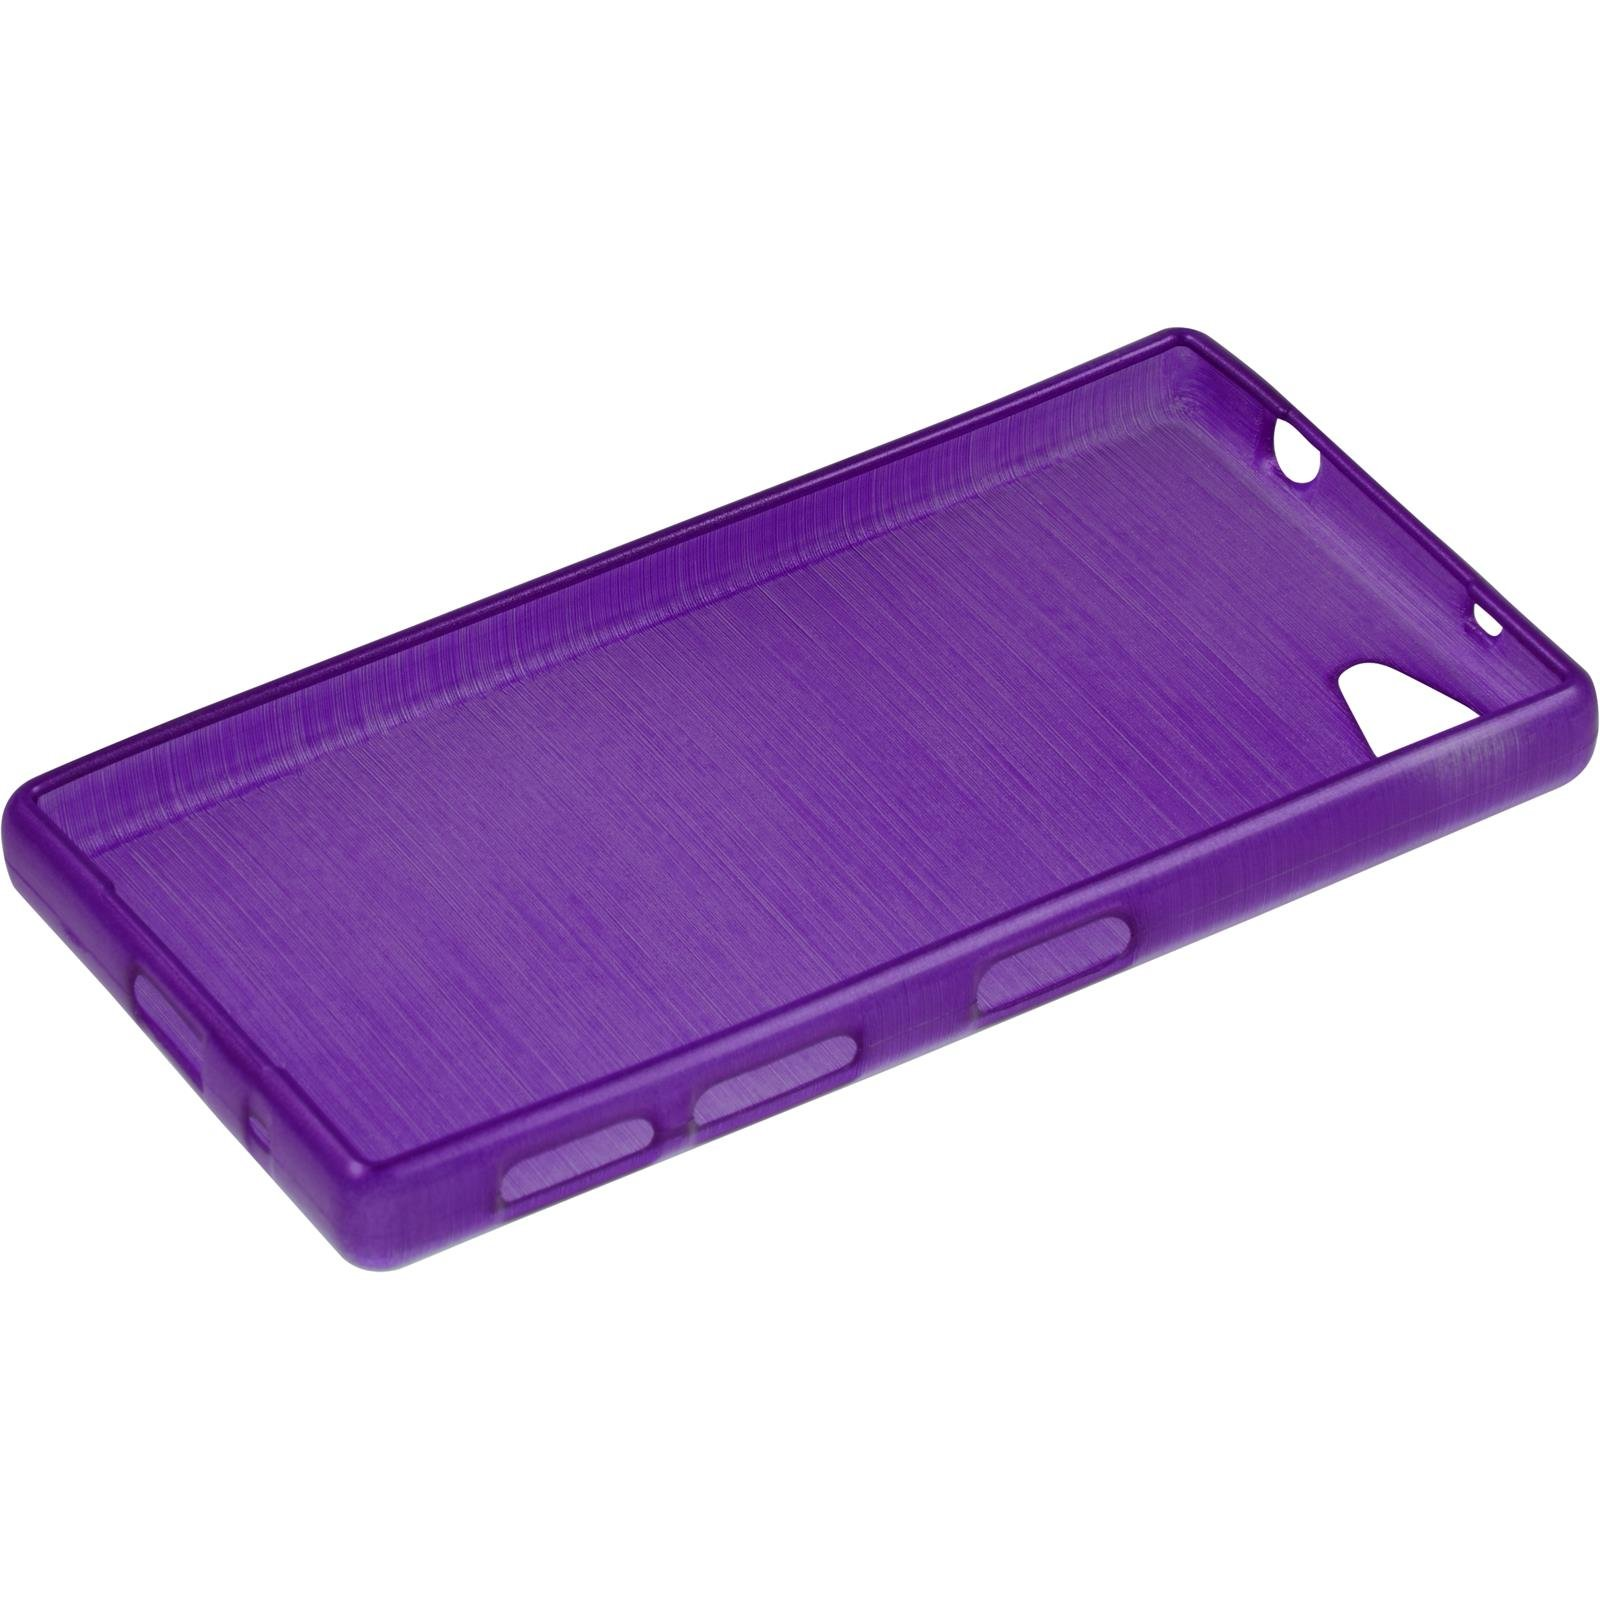 Silicone Case for Sony Xperia Z5 Compact - brushed purple - Cover PhoneNatic + protective foils by PhoneNatic (Image #4)